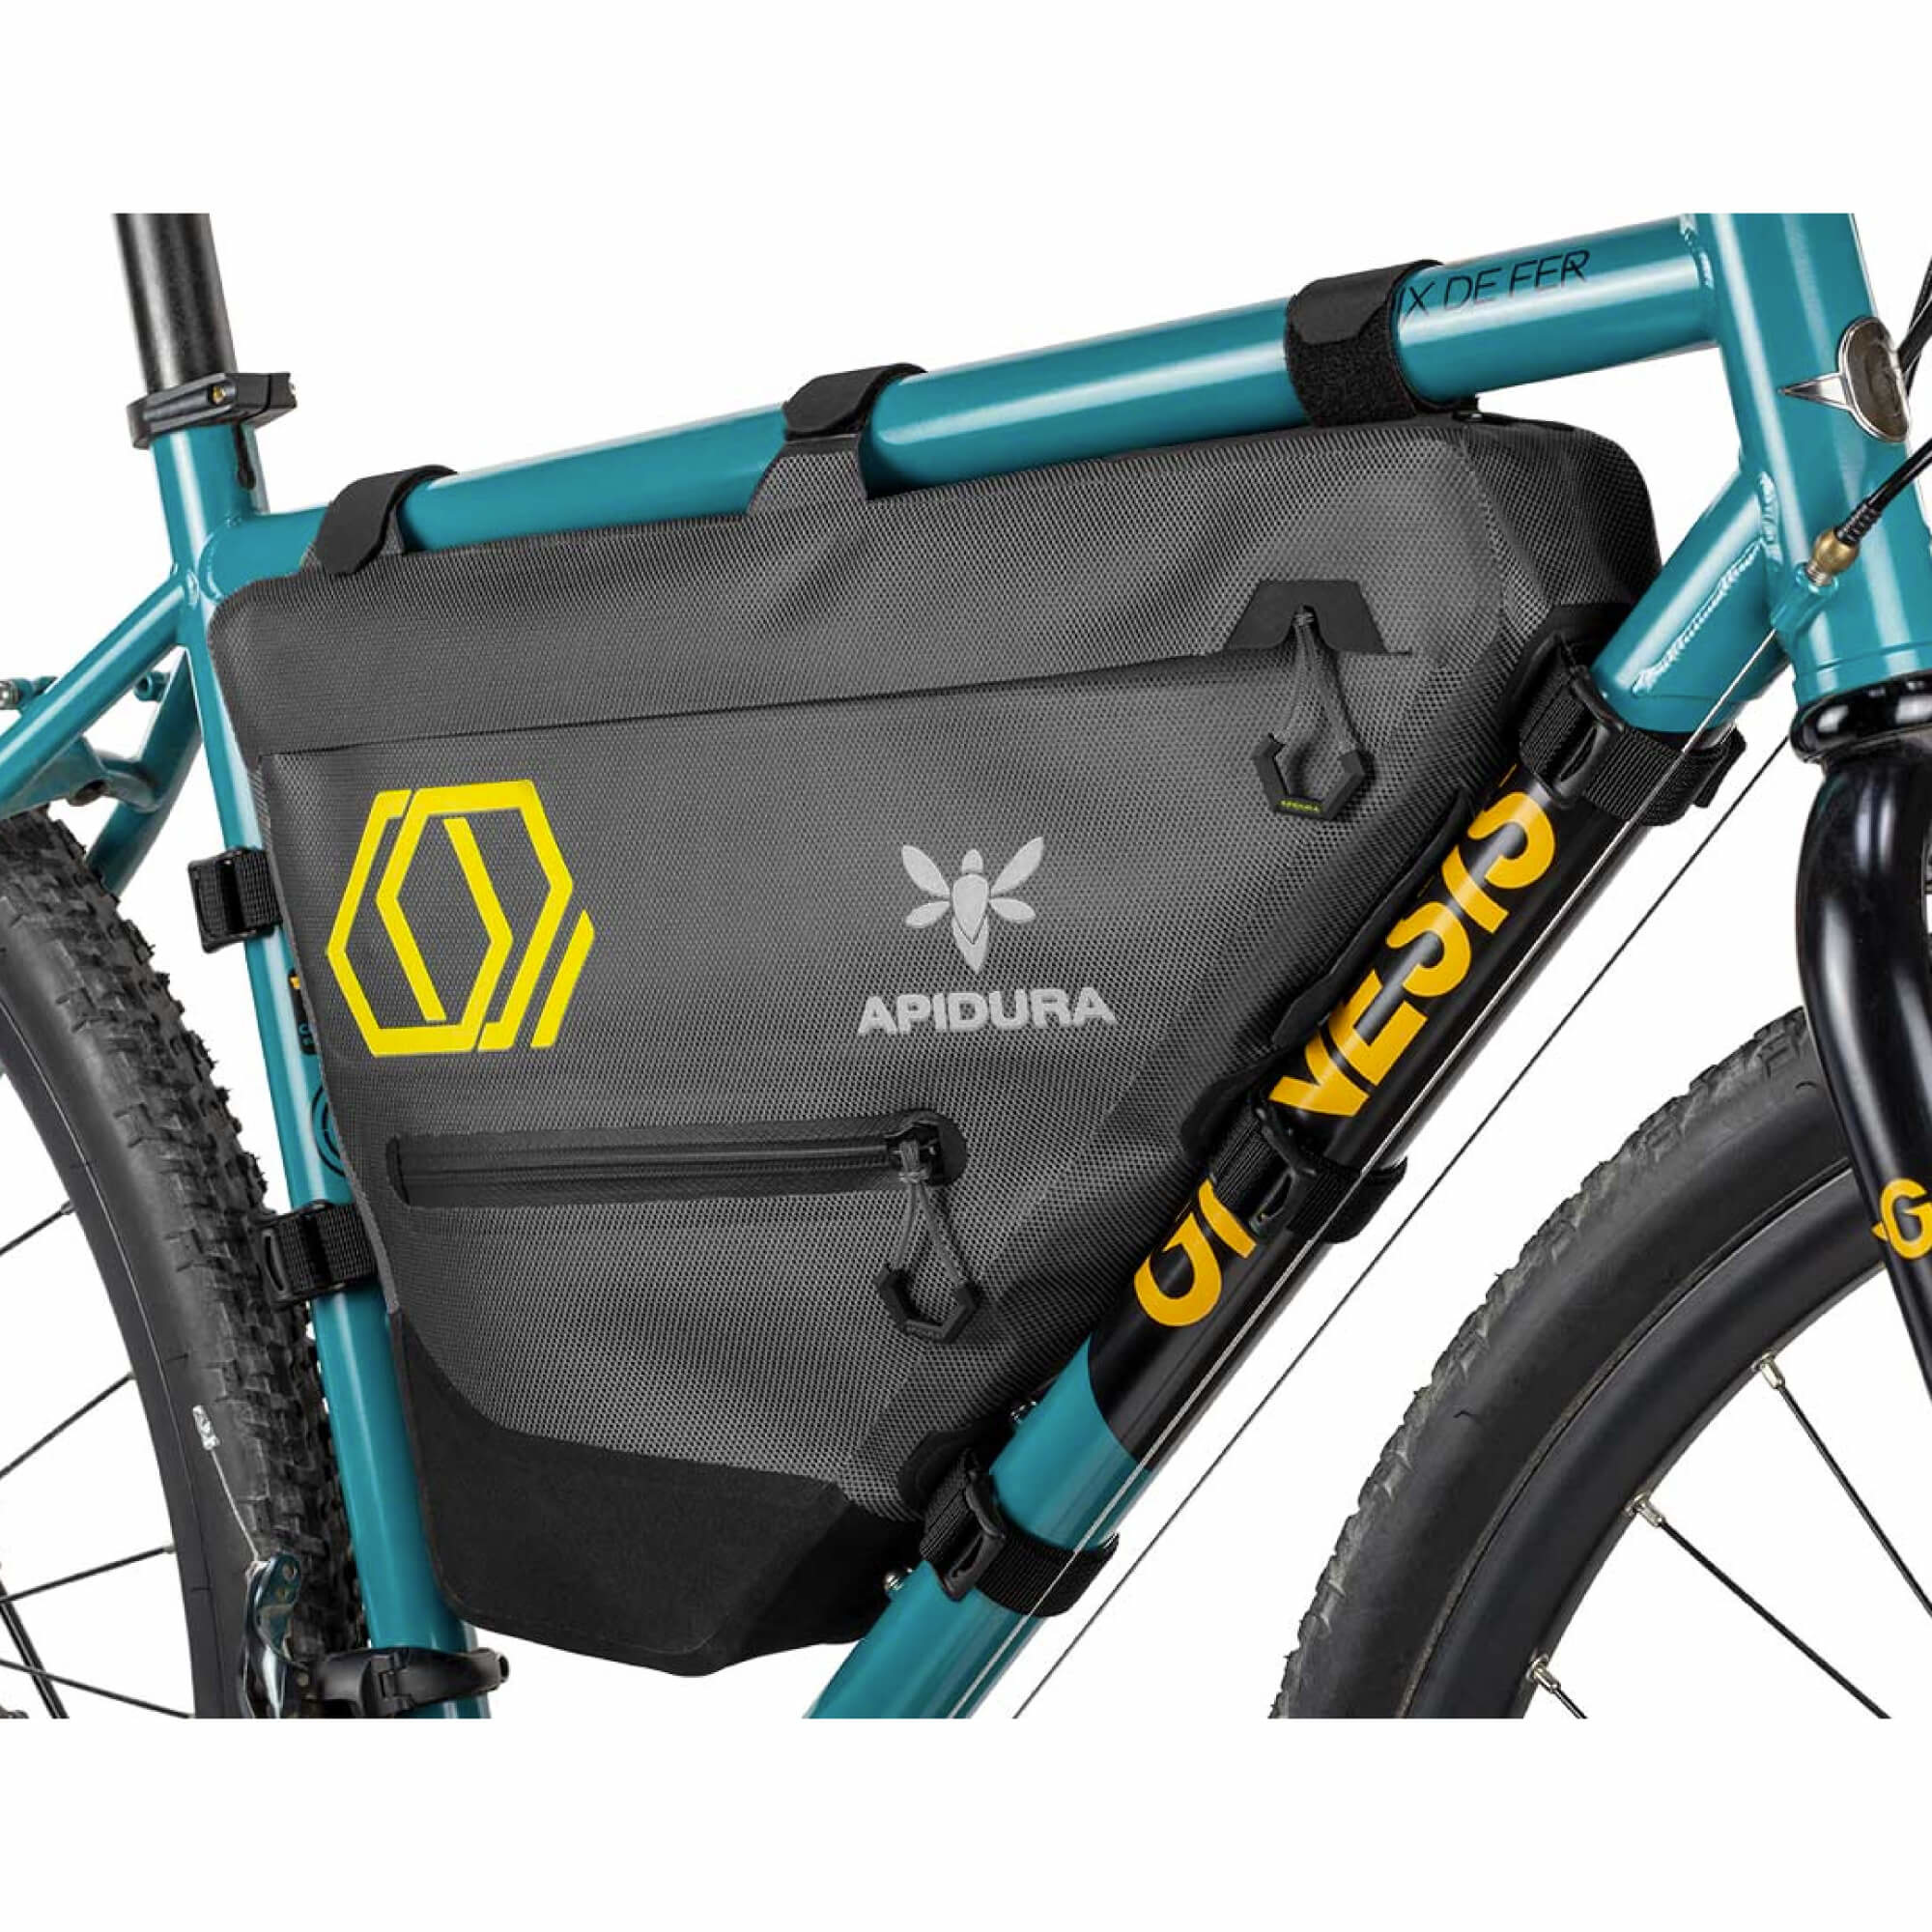 Expedition Full Frame Pack 6 L-2